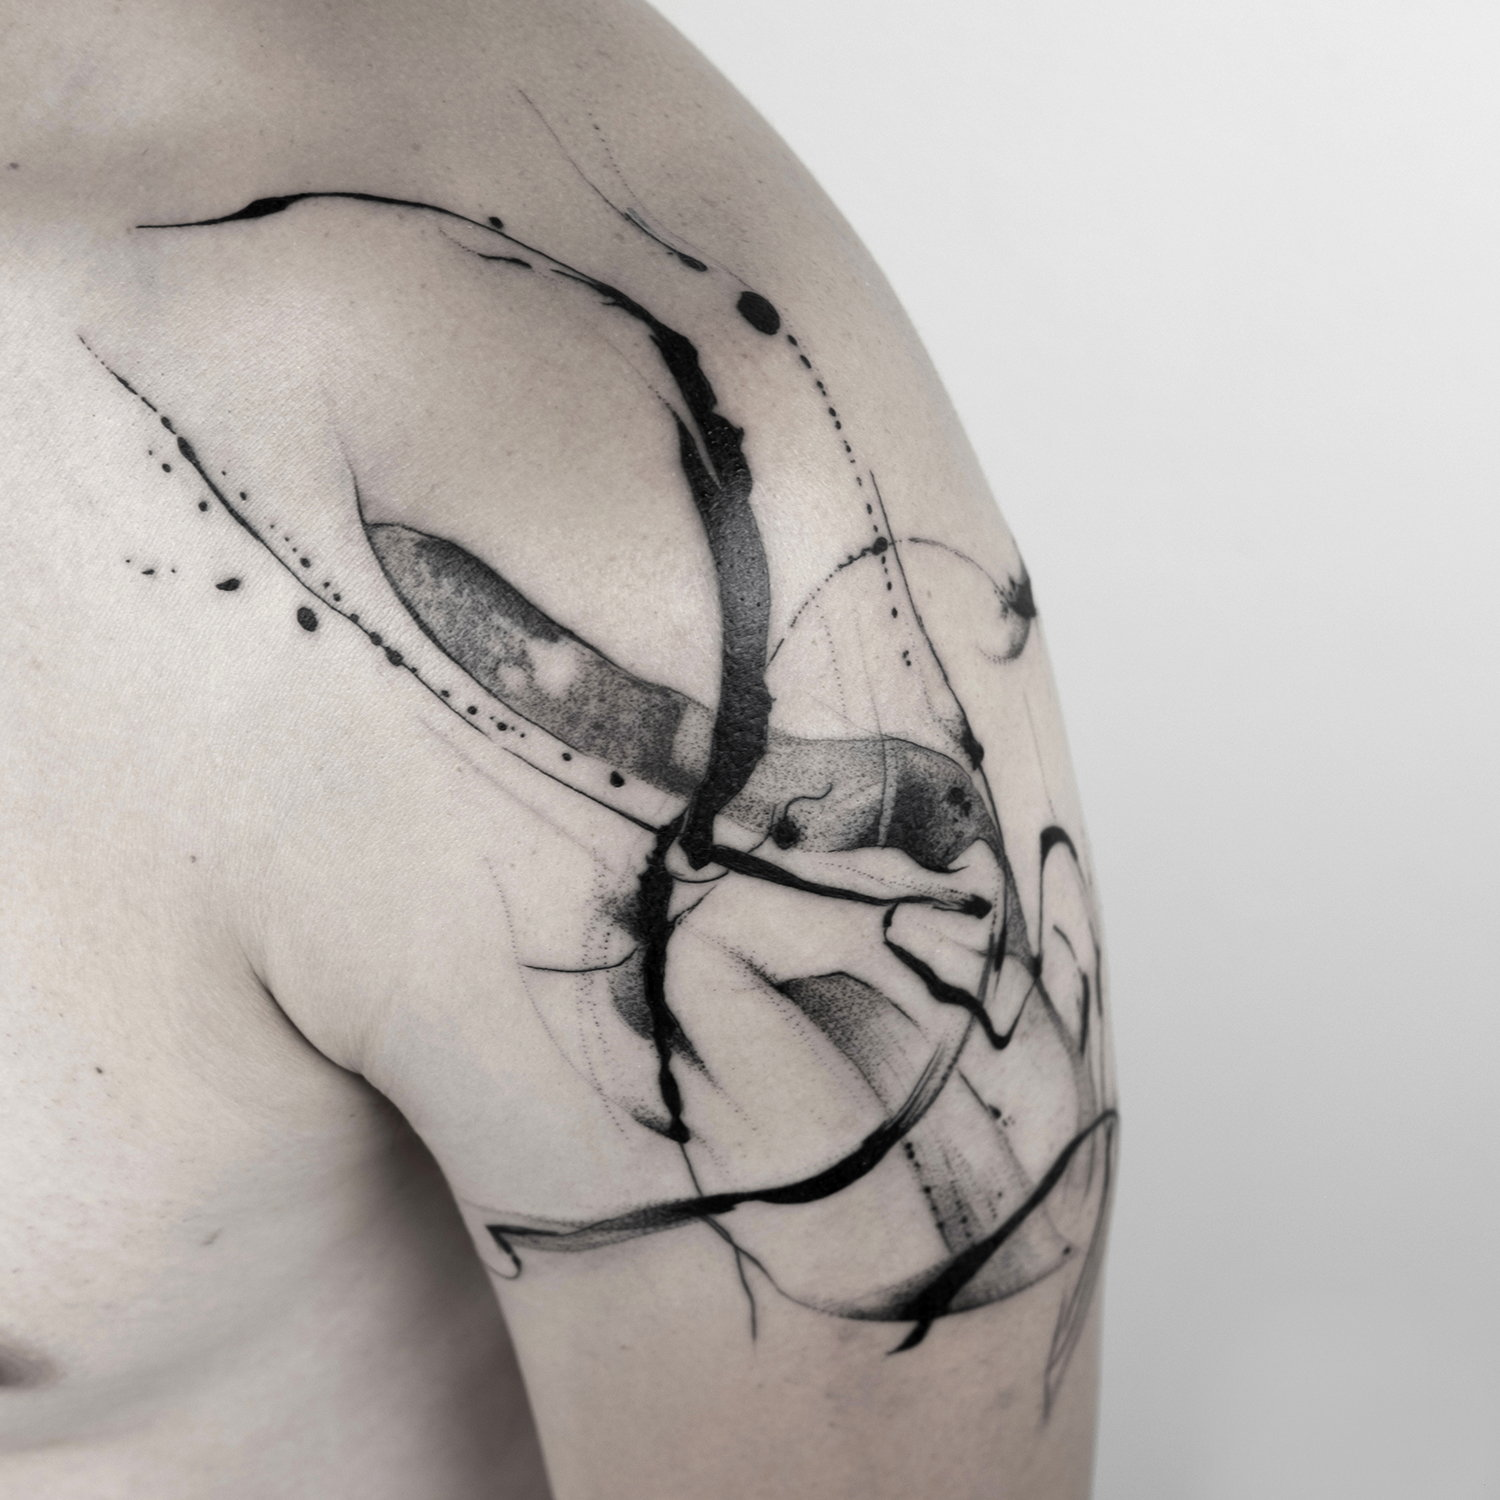 shoulder tattoo, blackwork, freehand, flow and motion, poetic